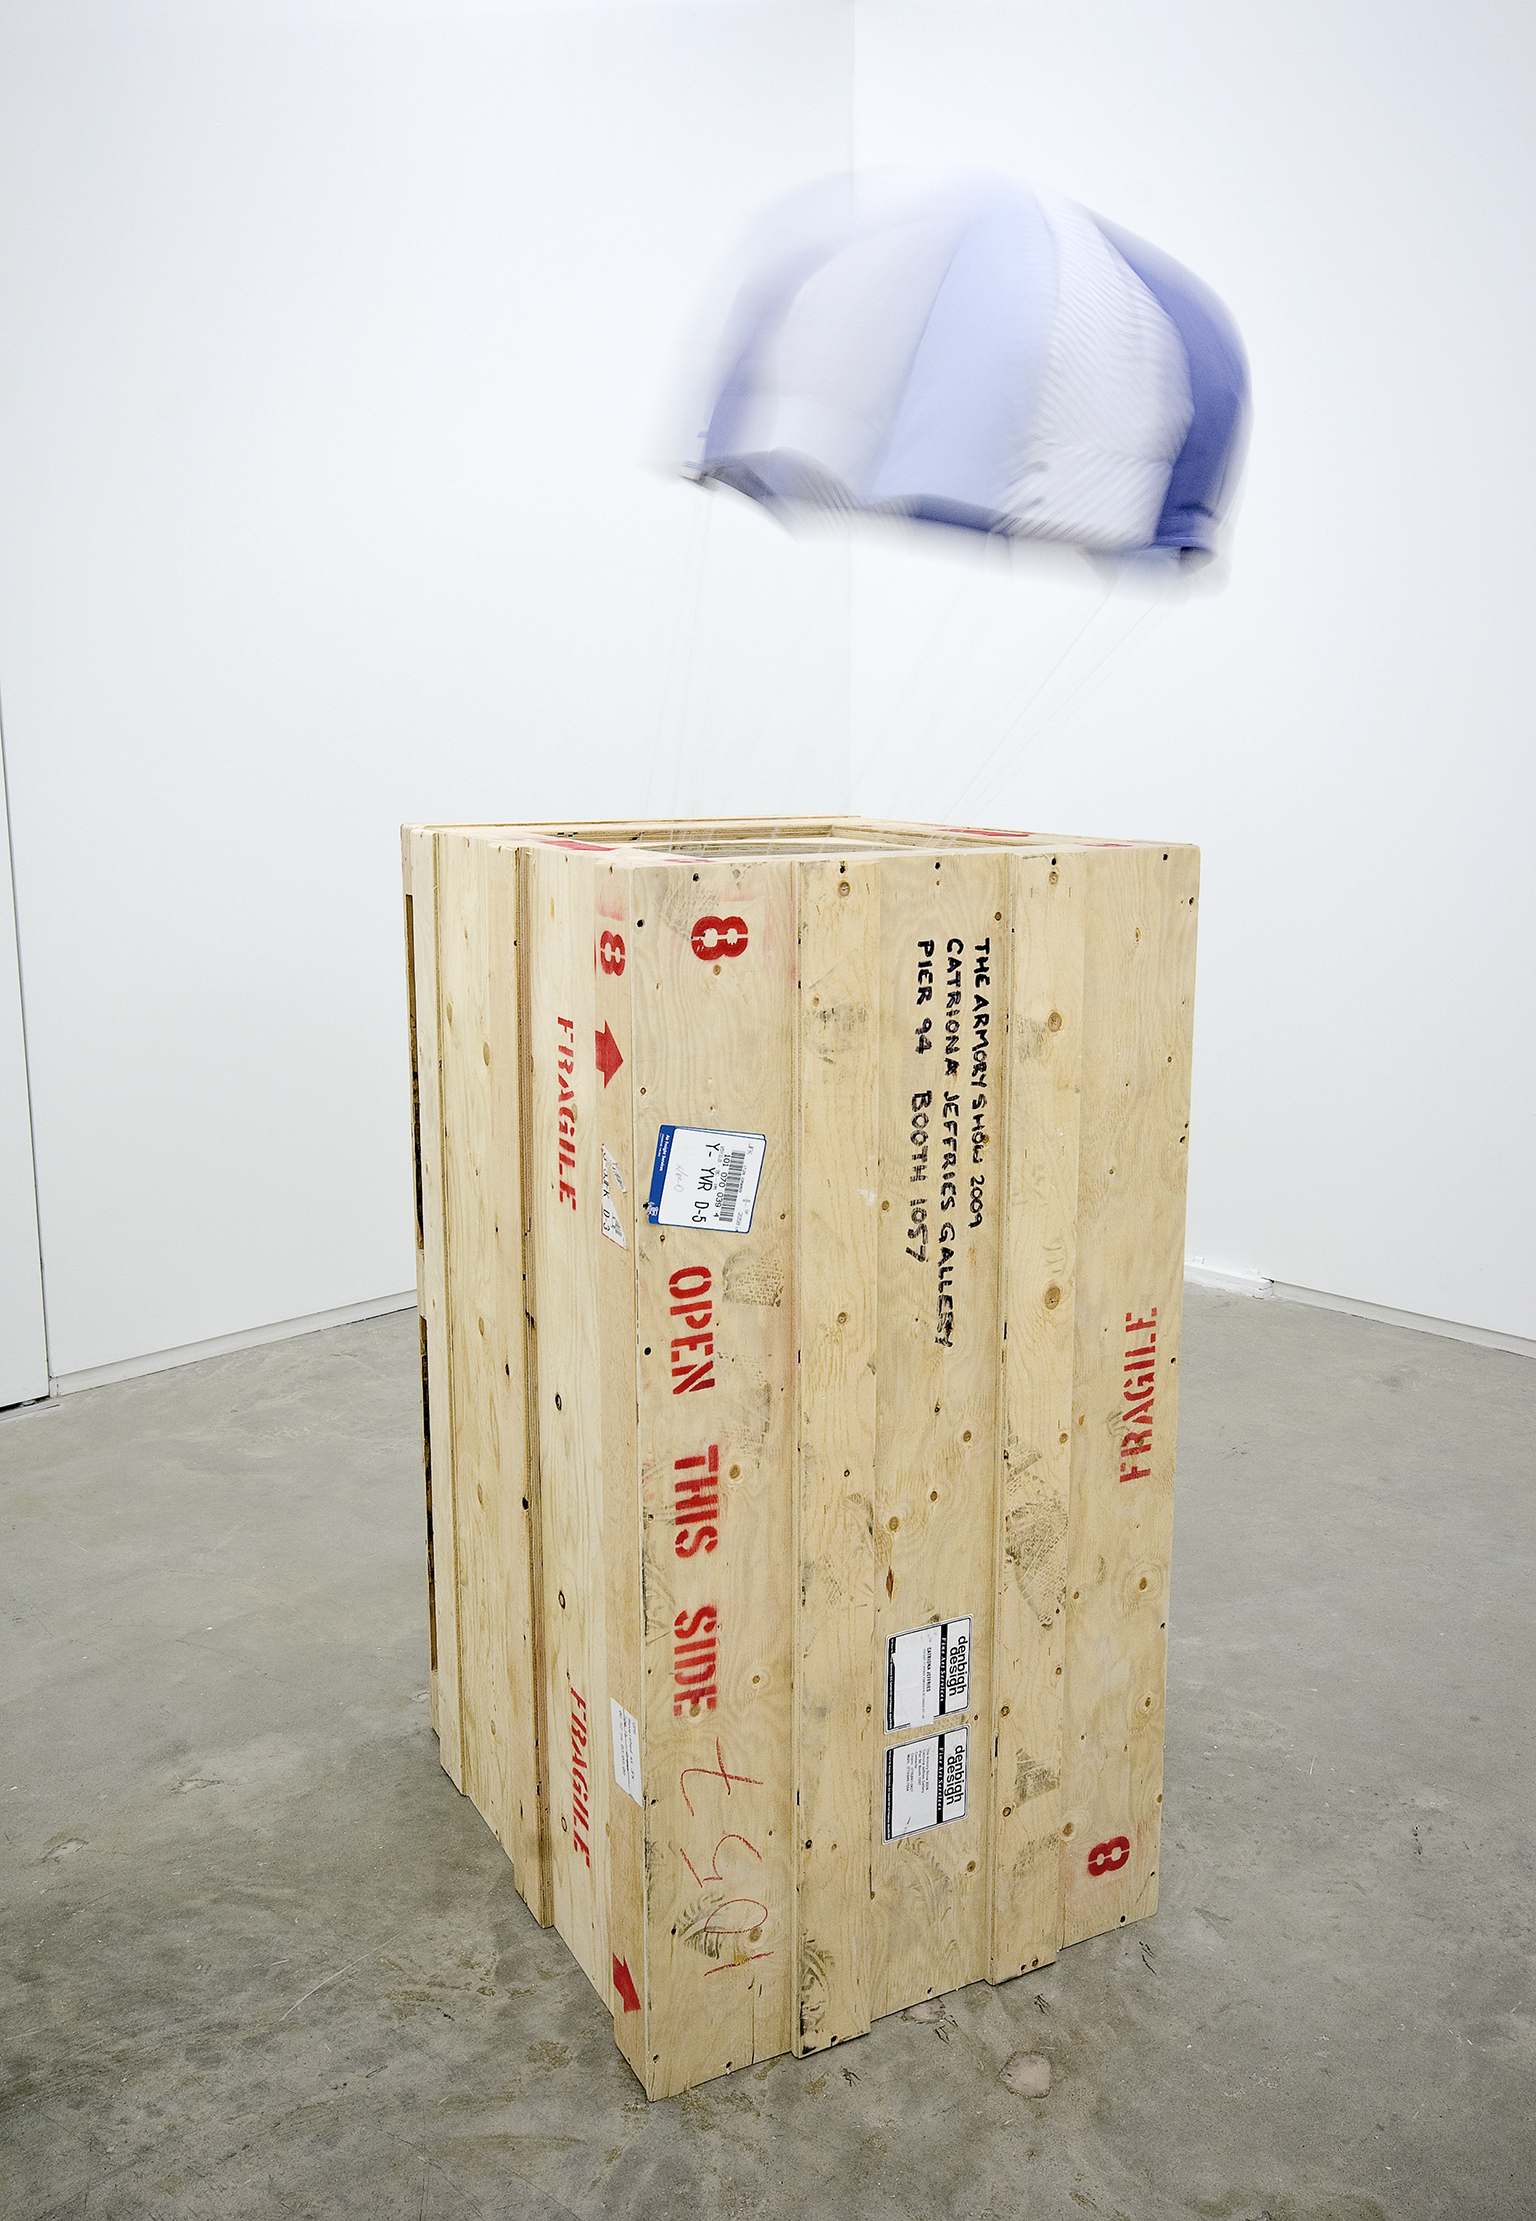 Brian Jungen, Falling Crate, 2009, shirts, Navajo wool, electric fan, plywood crate, 88 x 36 x 29 in. (224 x 91 x 72 cm) by